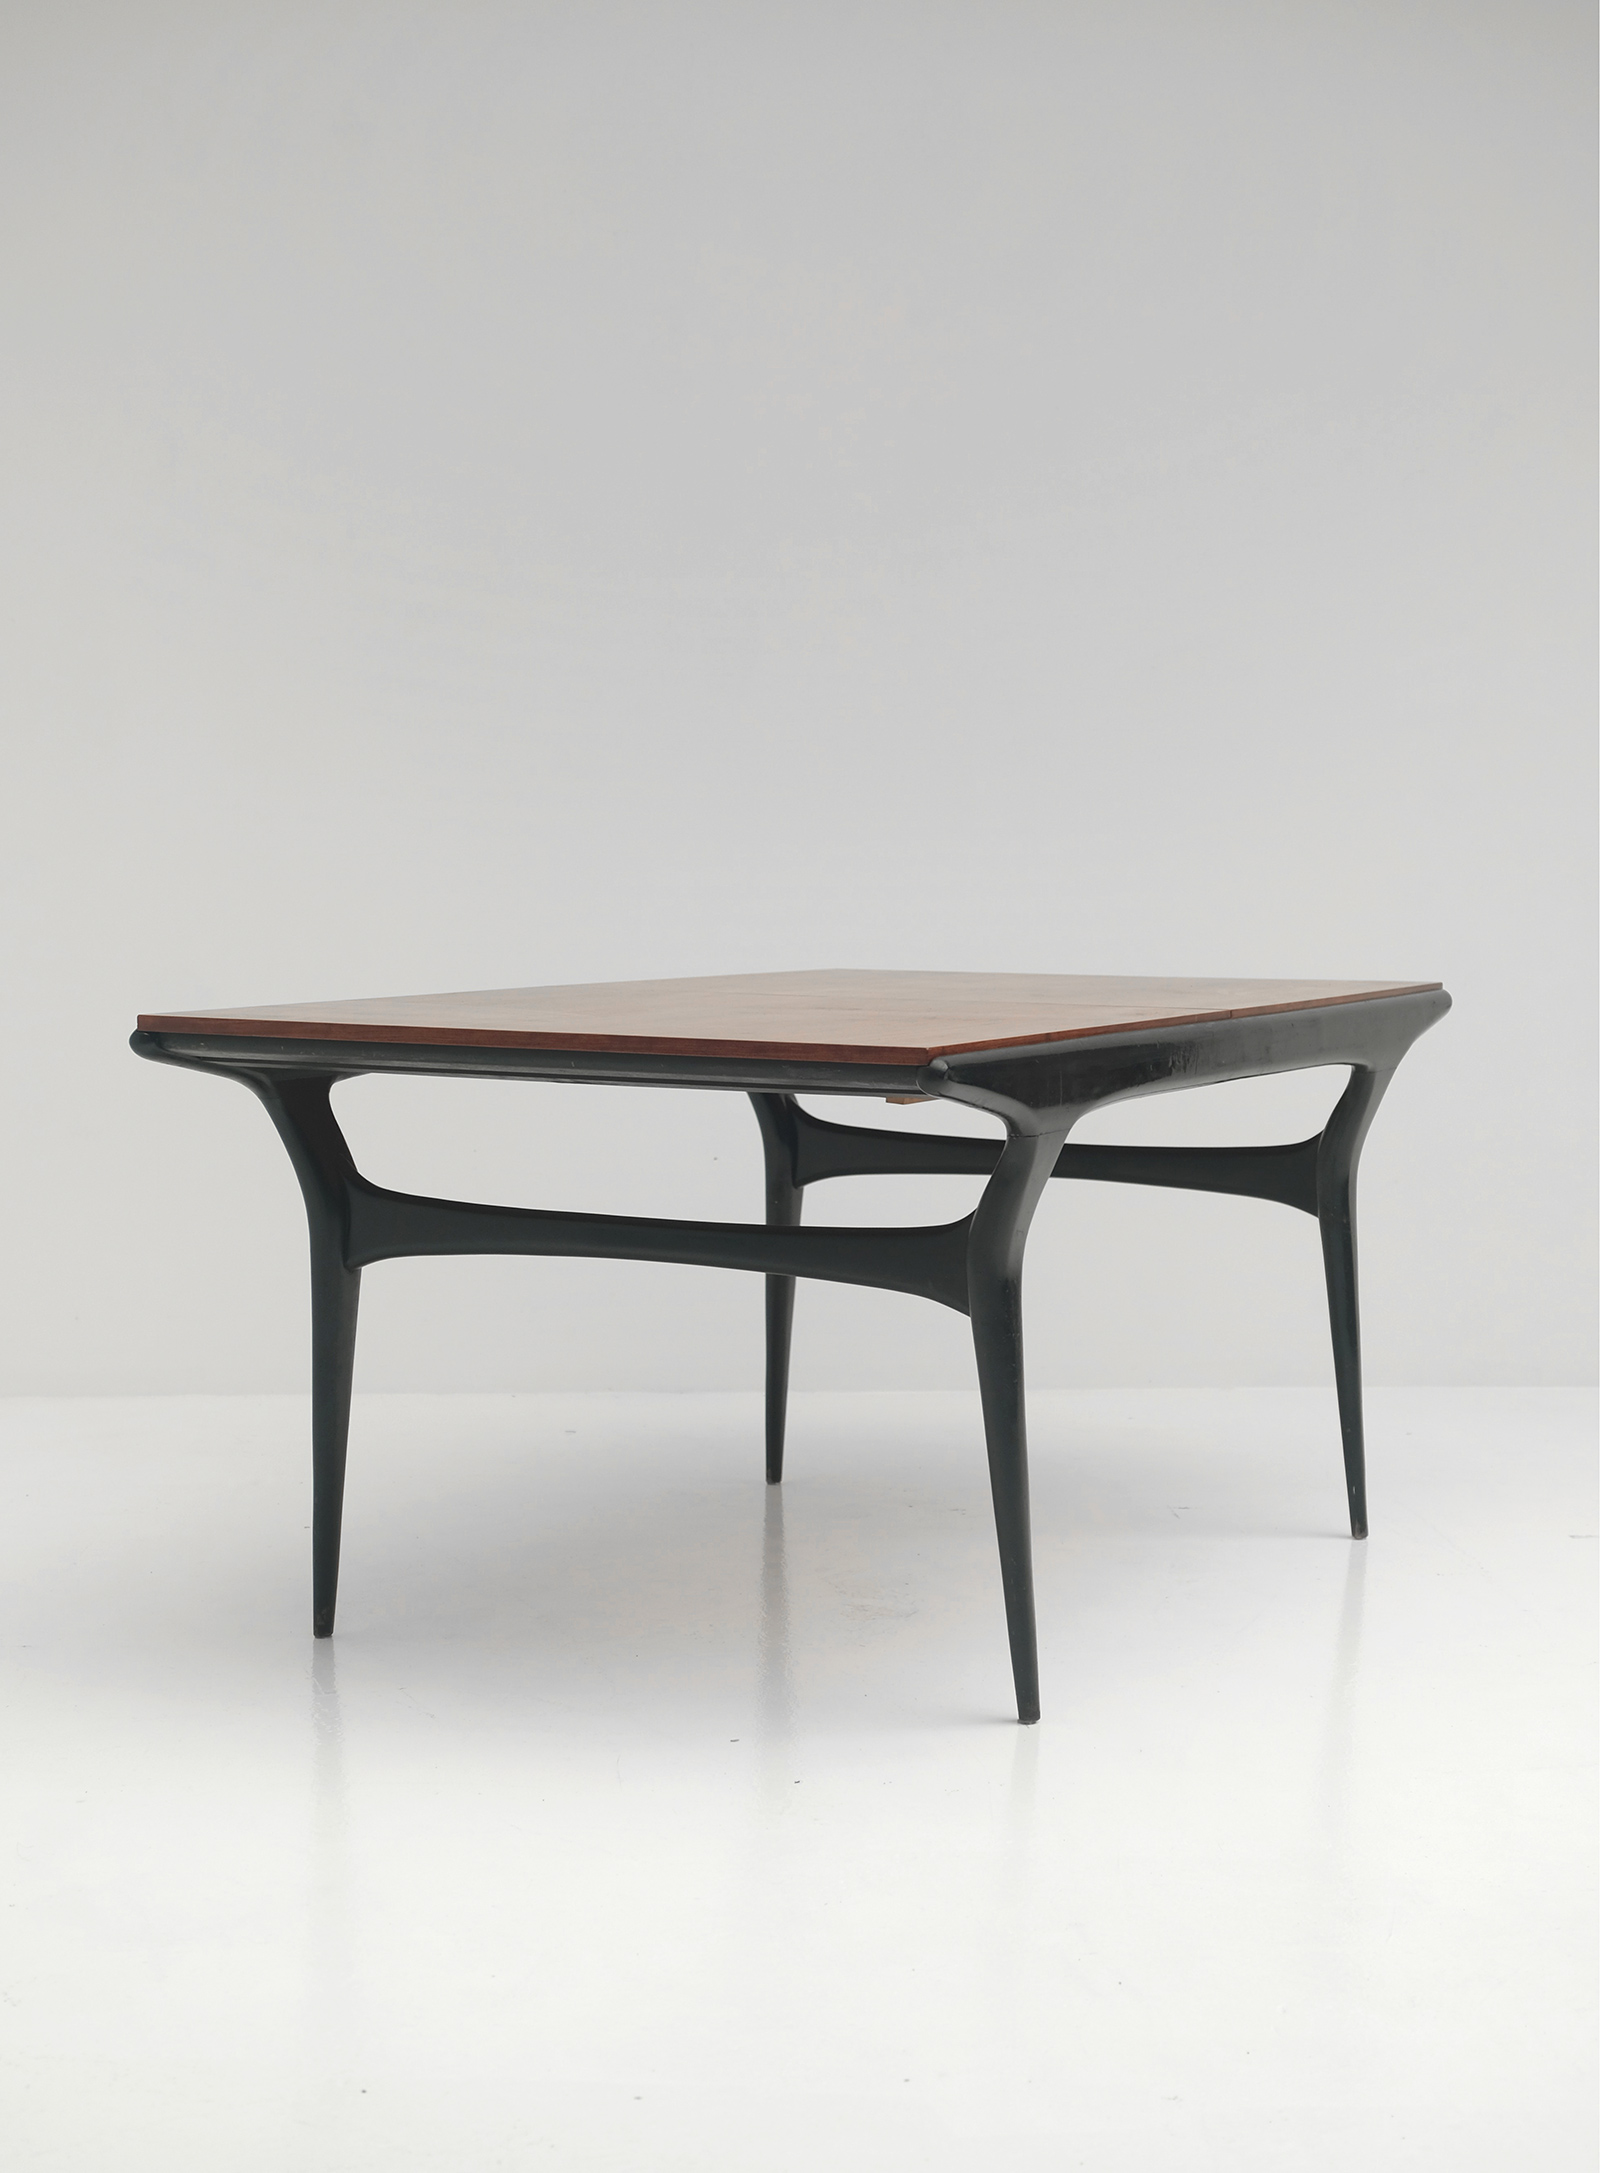 Alfred Hendrickx rare Belform Dining Table 1950simage 4